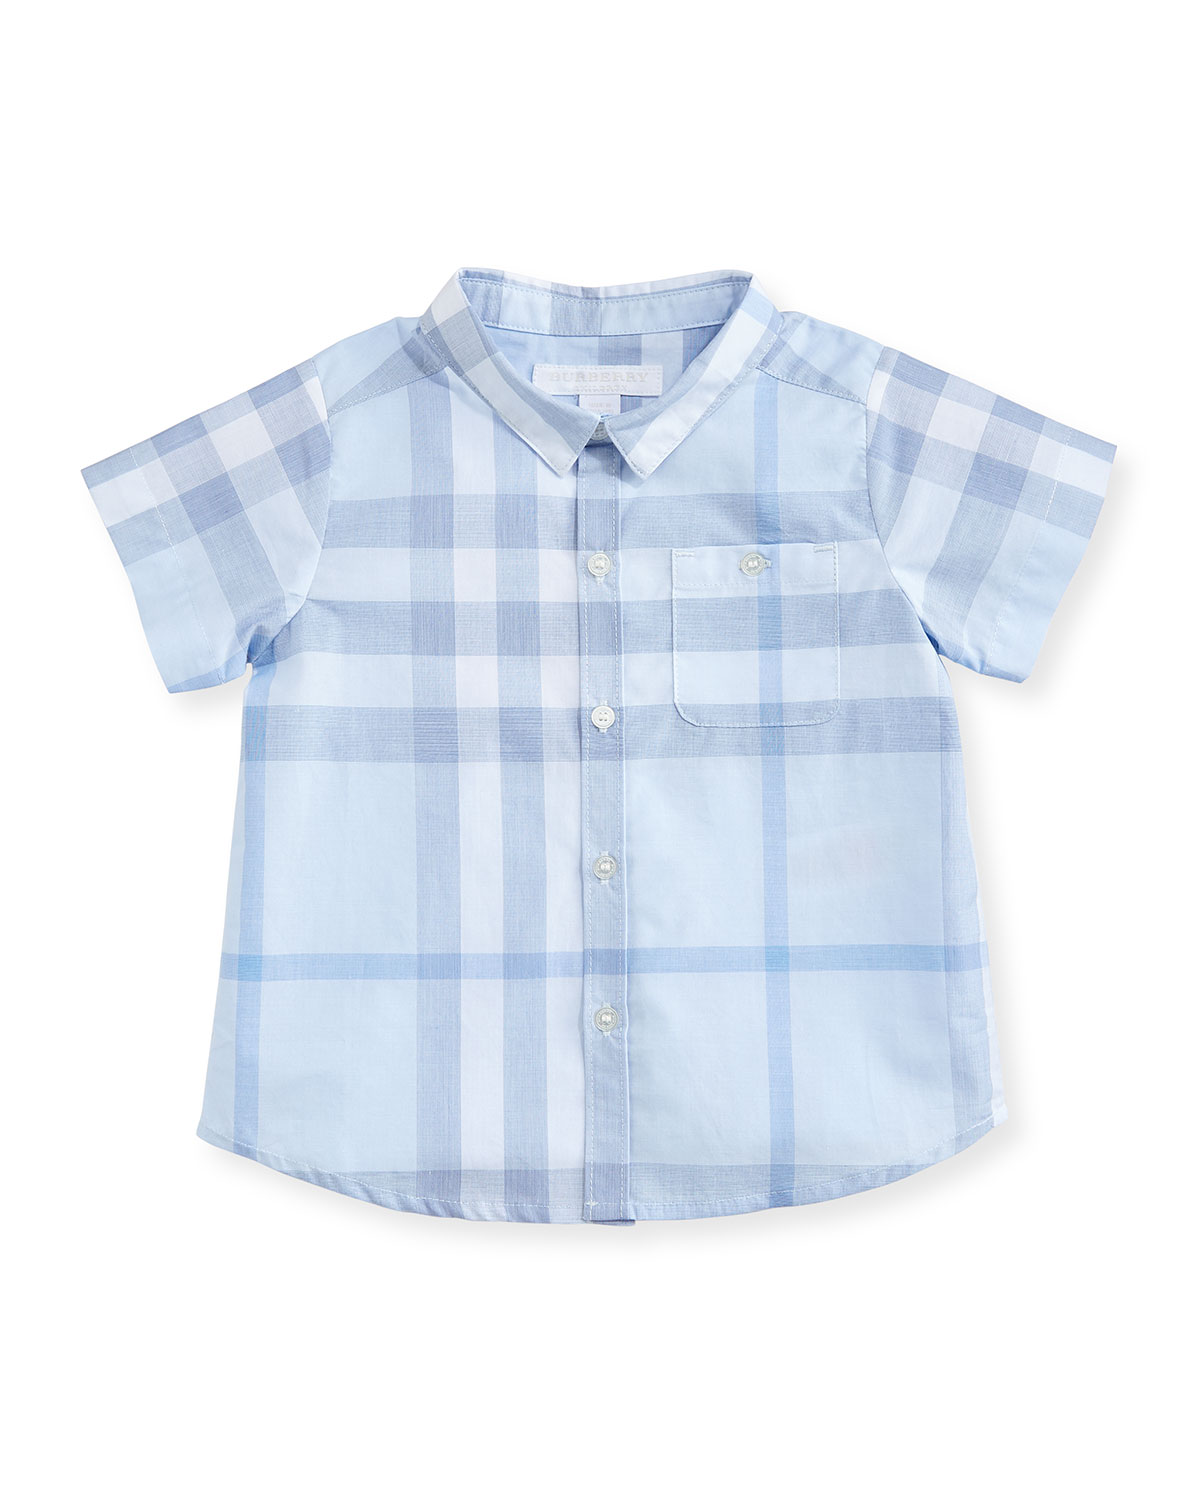 Tyson Short-Sleeve Cotton Check Shirt, Light Blue, Size 3-24 Months